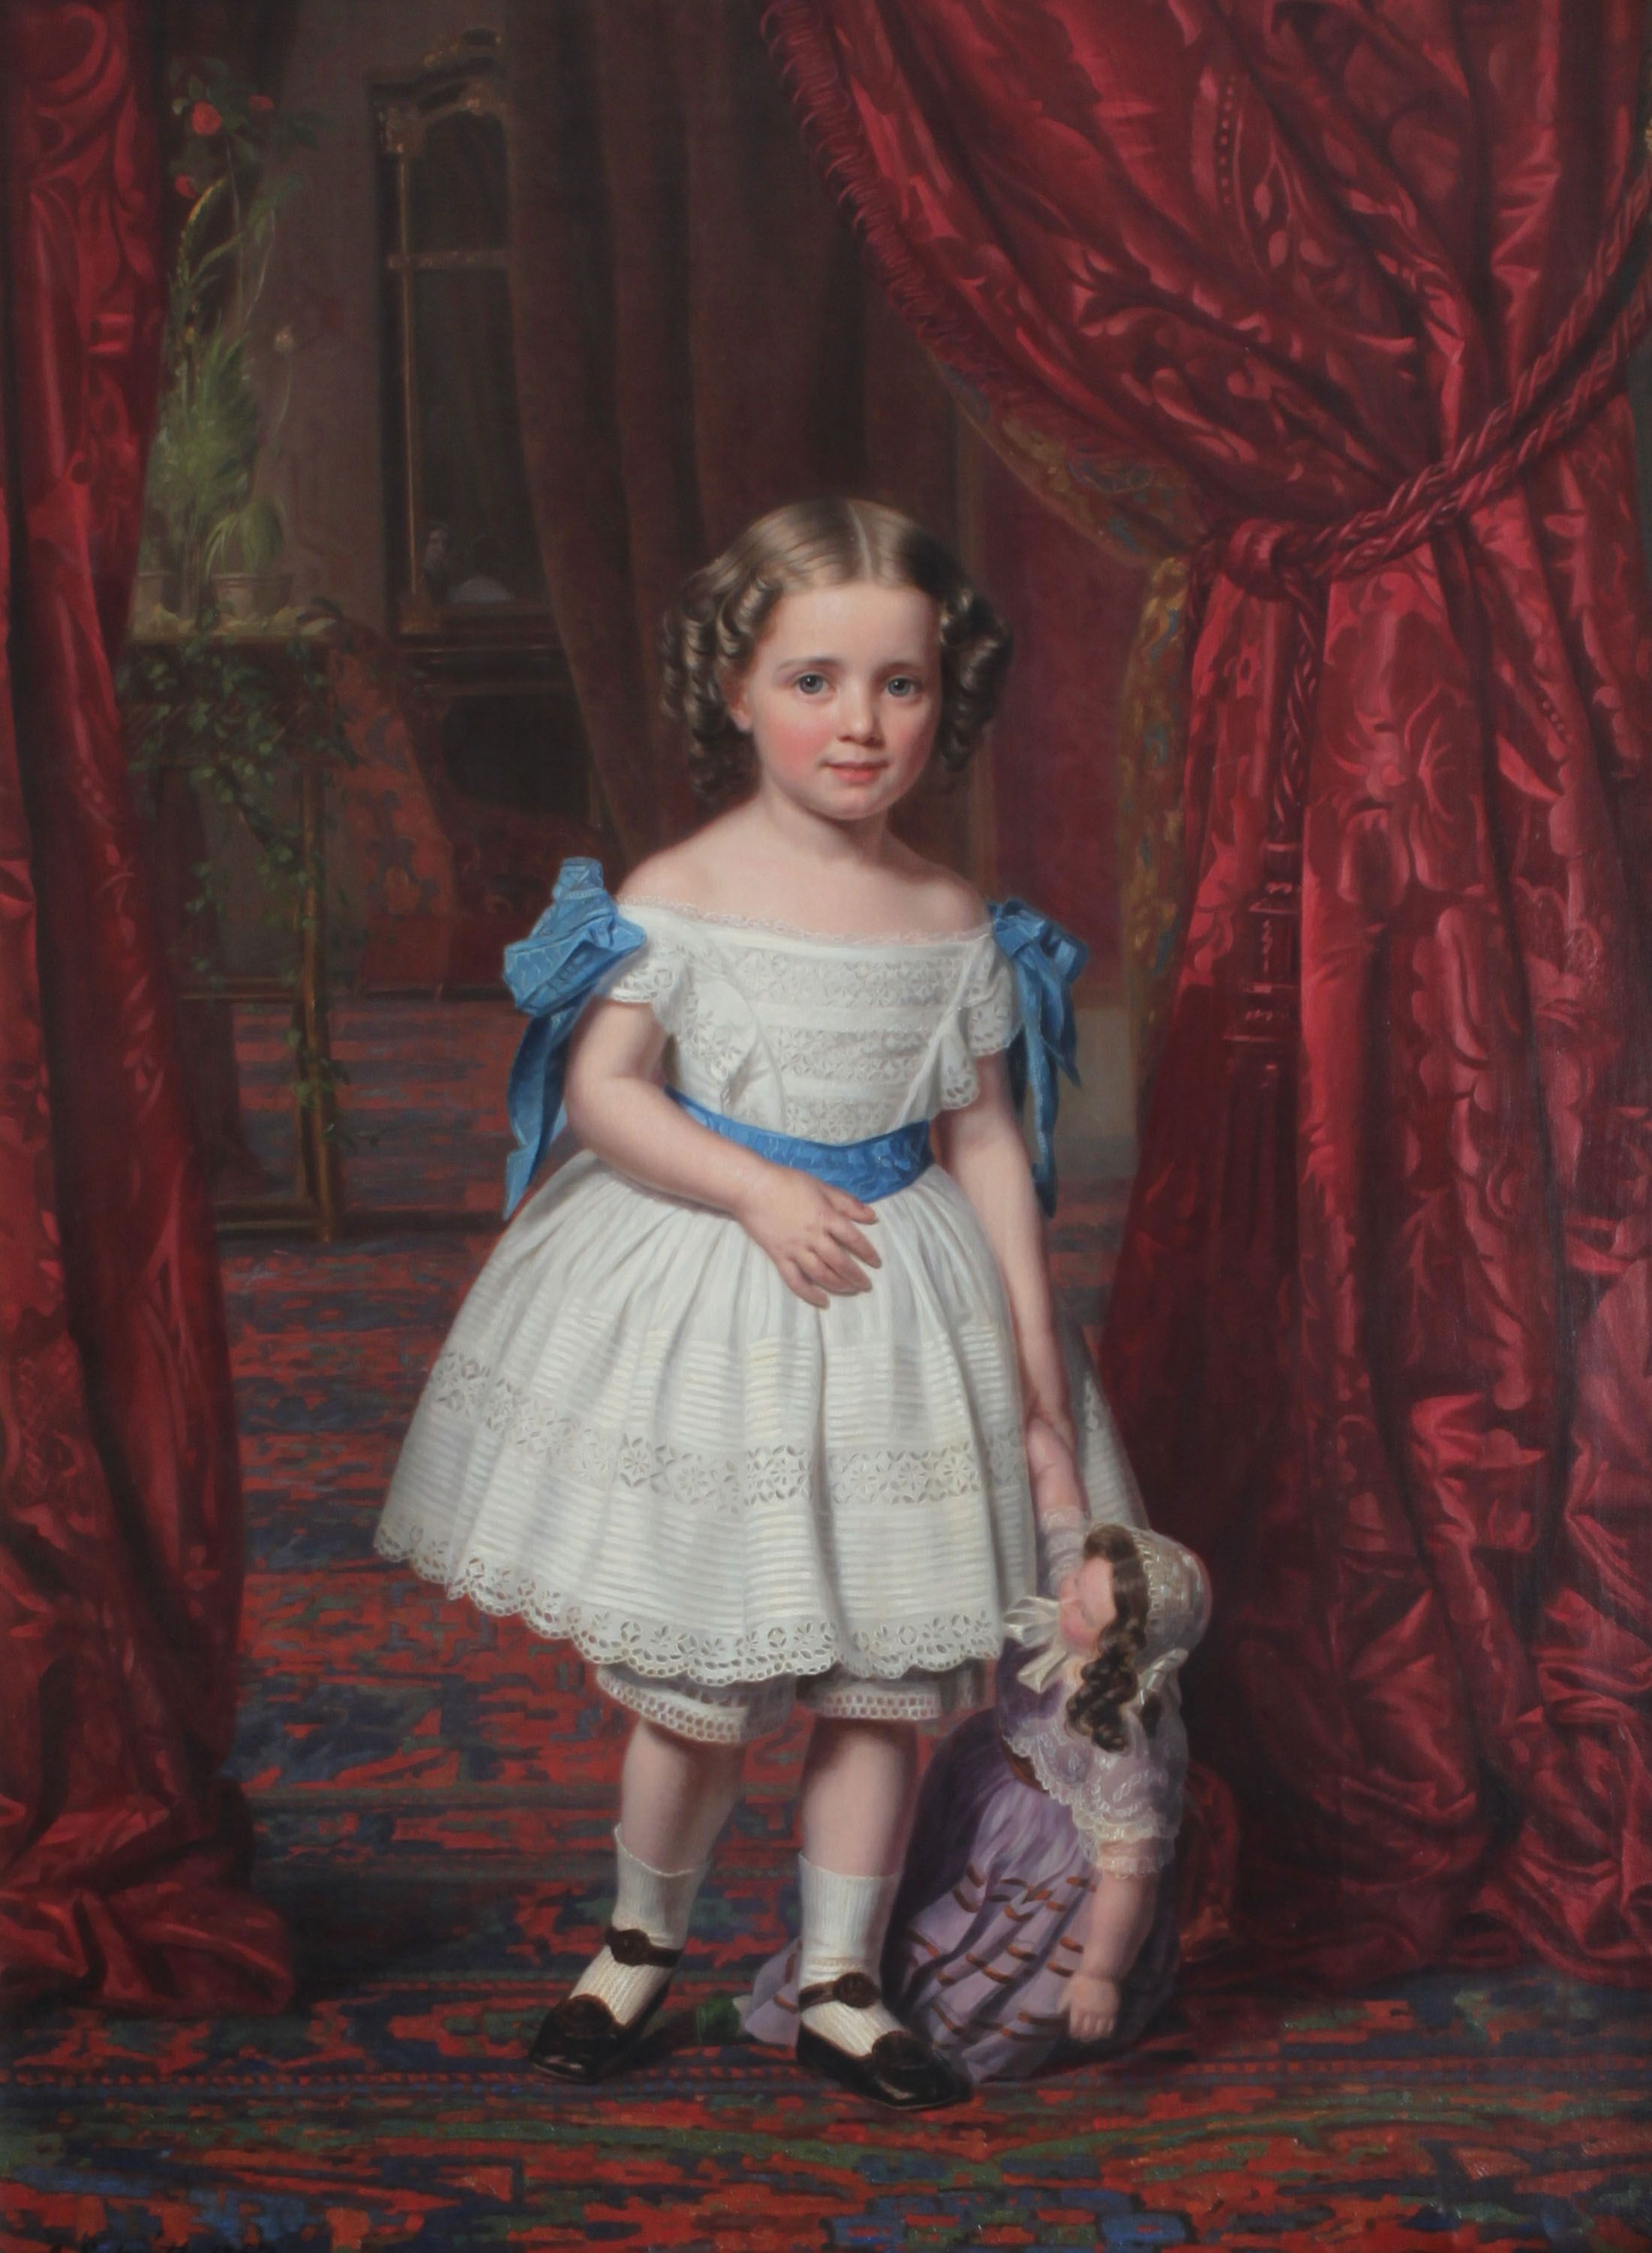 1857: Princess Thyra of Denmark (1853-1933),  was the fifth child and youngest daughter of Christian IX of Denmark and Louise of Hesse-Kassel. In 1878 she married Ernest Augustus, the exiled heir to the Kingdom of Hanover. Thyra was the younger sister of Frederik VIII of Denmark, Queen Alexandra of the United Kingdom, George I of Greece and Empress Maria Feodorovna of Russia.